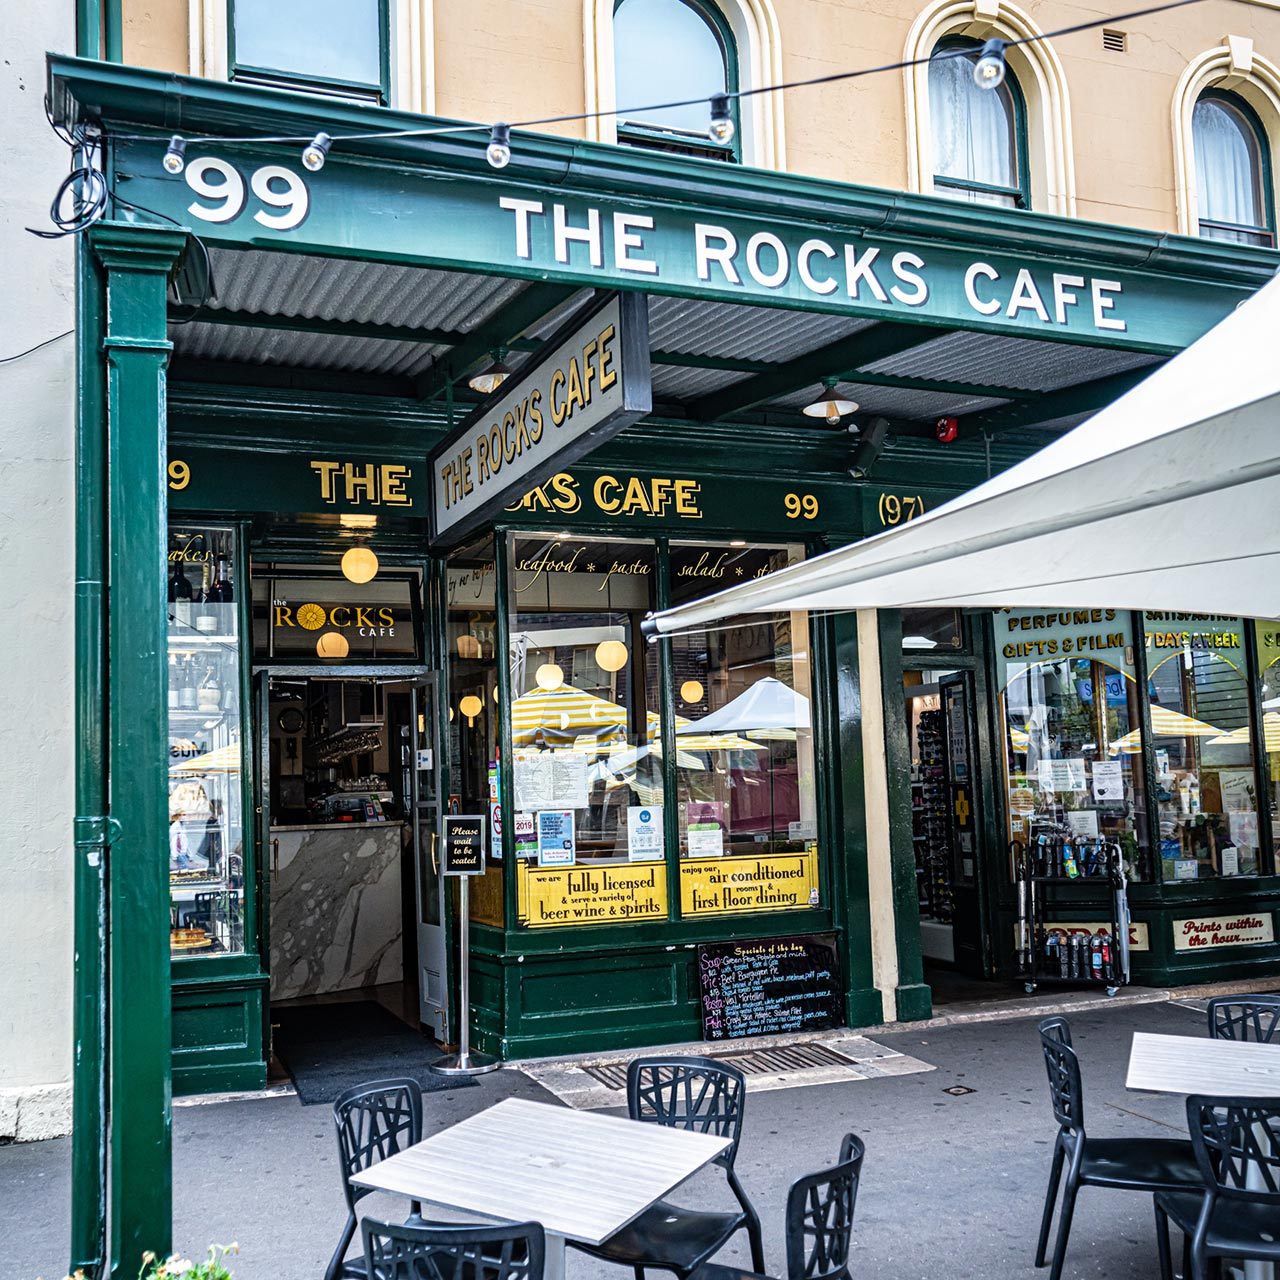 The Rocks Cafe street front